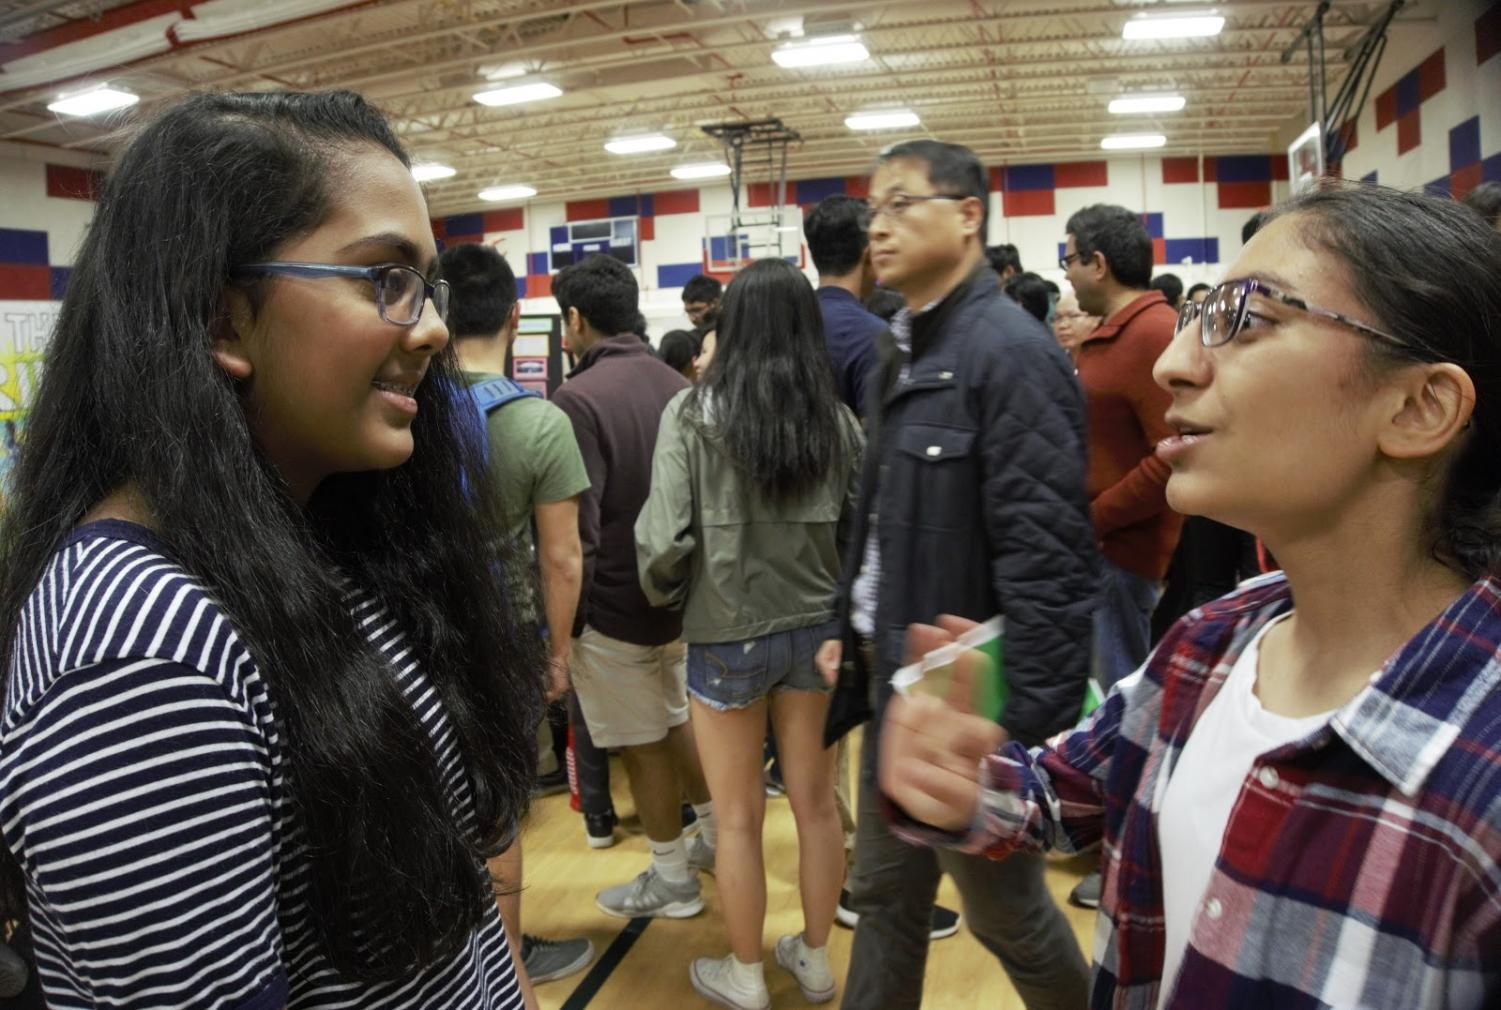 Freshmen Lily Walters talks about IBET and course selections to Ananya Banderu, a rising freshman at Jefferson during welcome night.